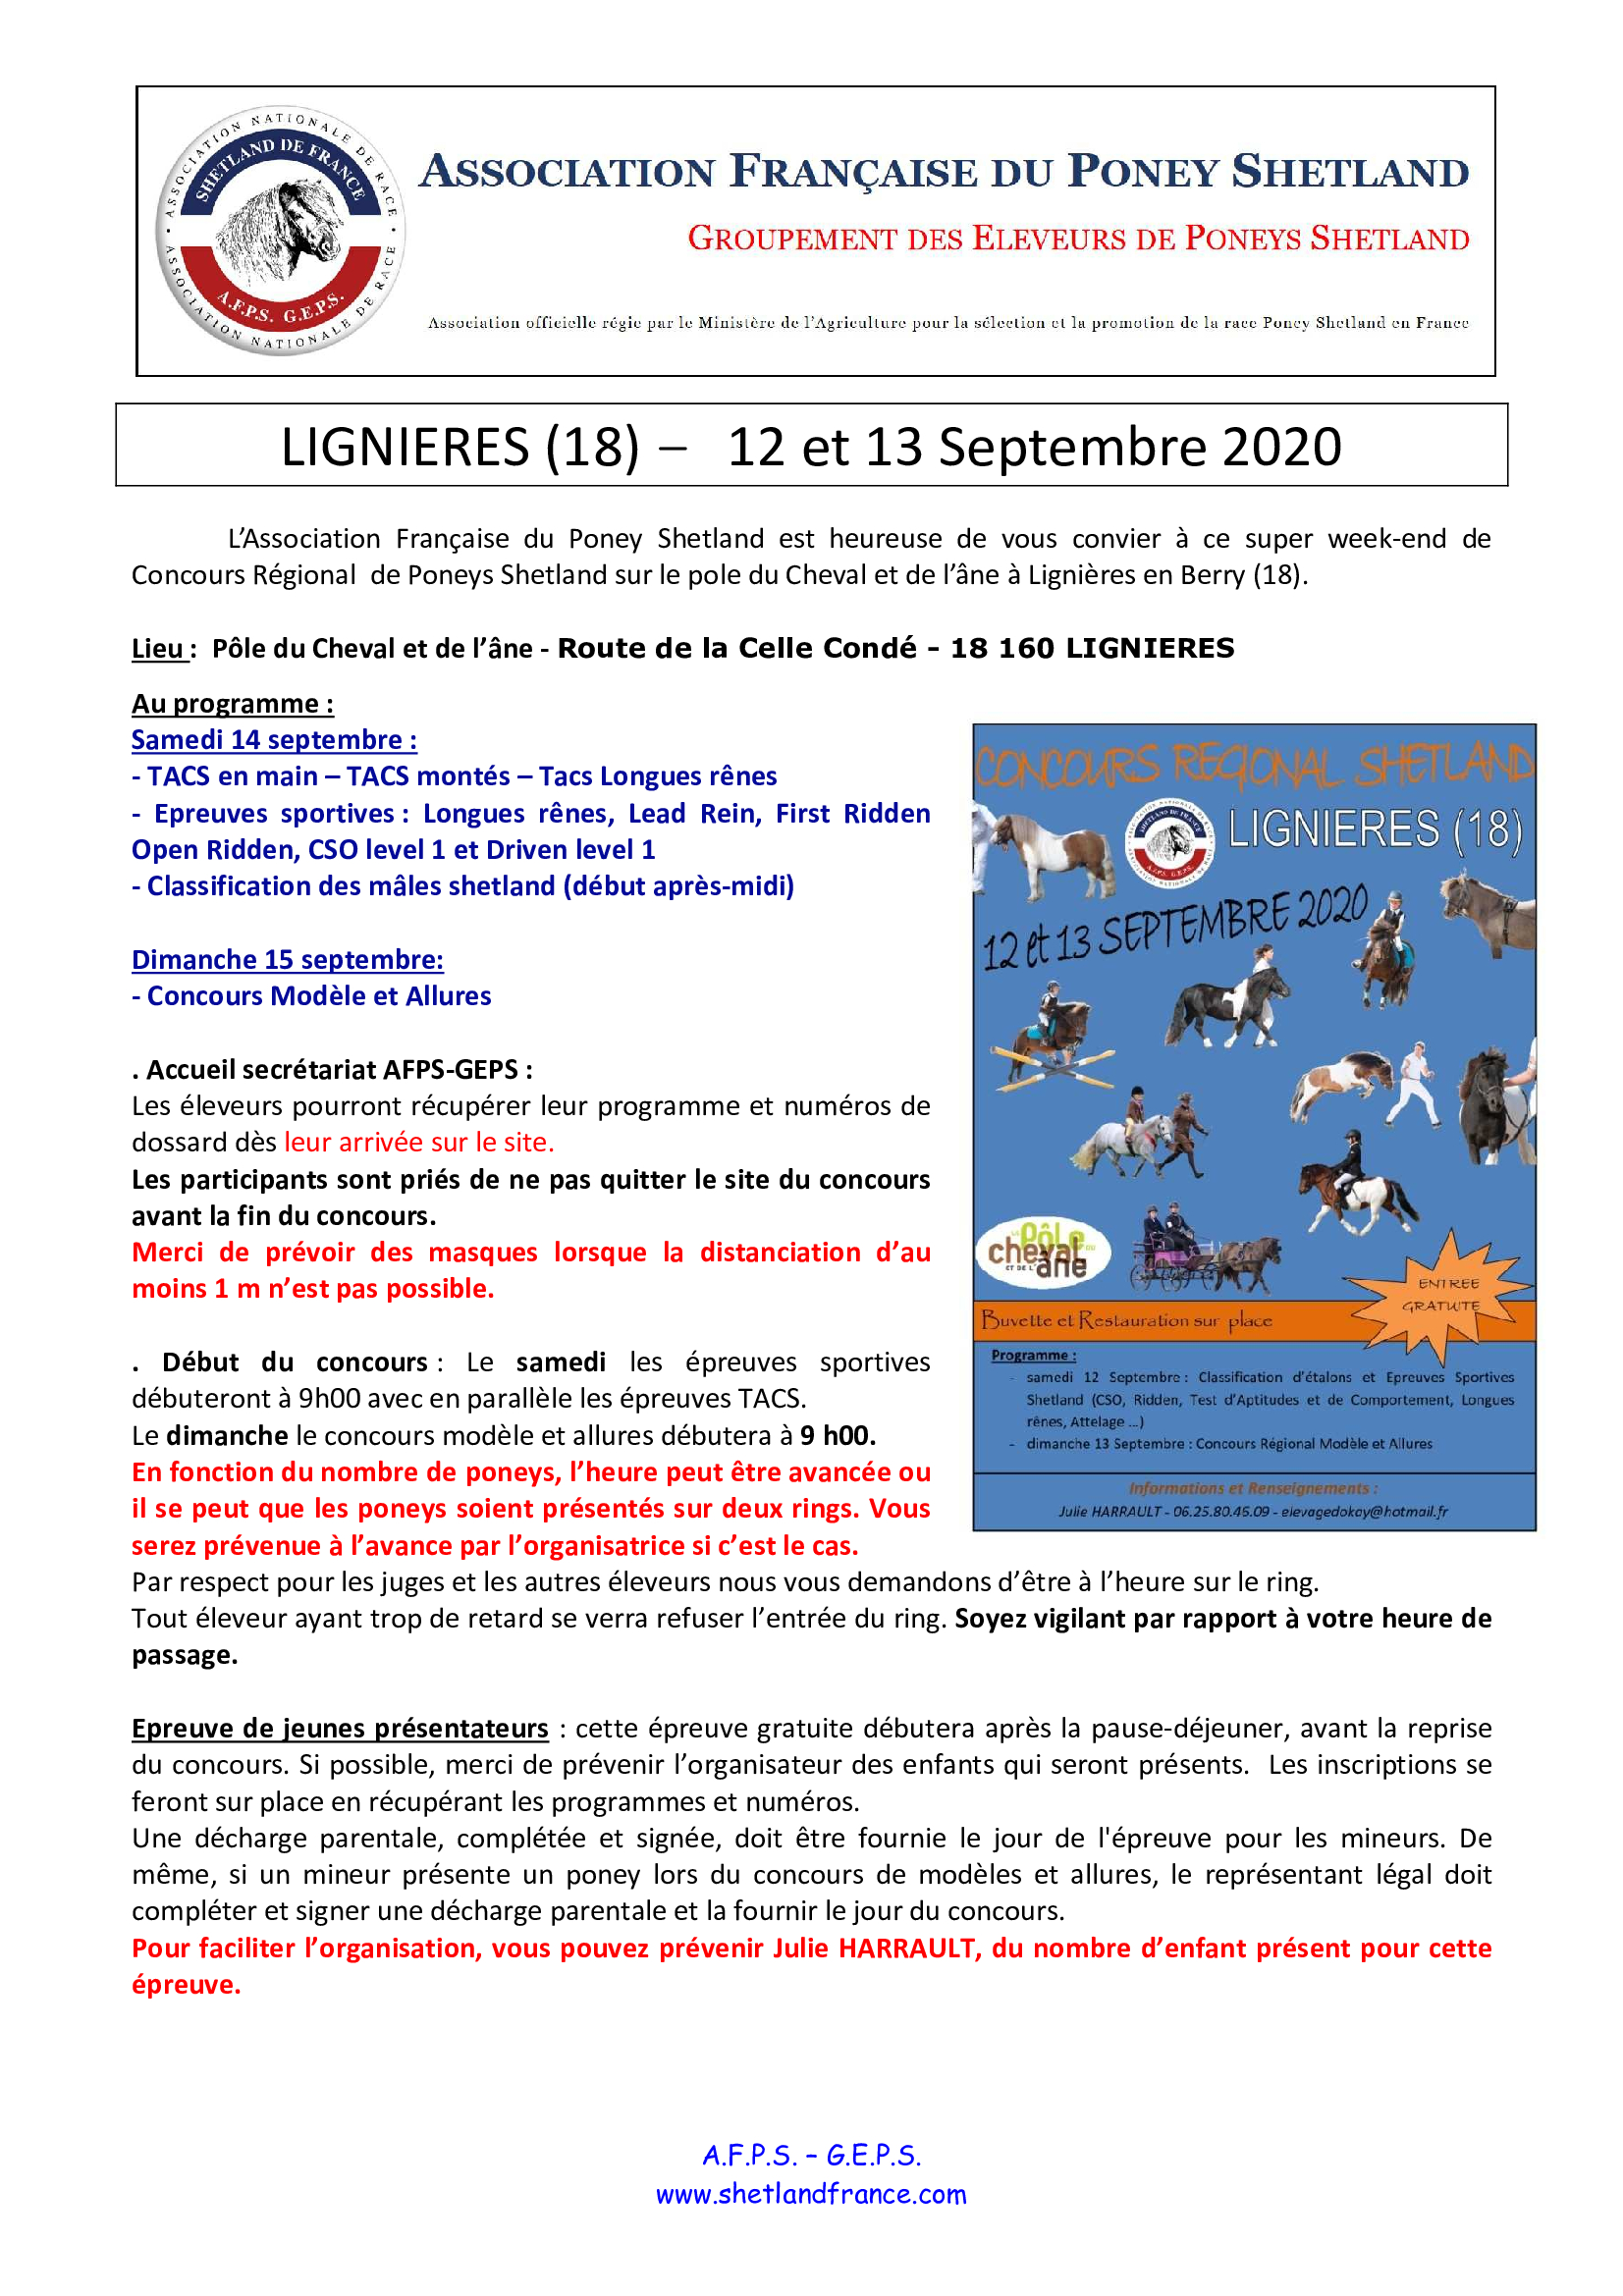 Dossier-renseignements-lignieres-2020-page1